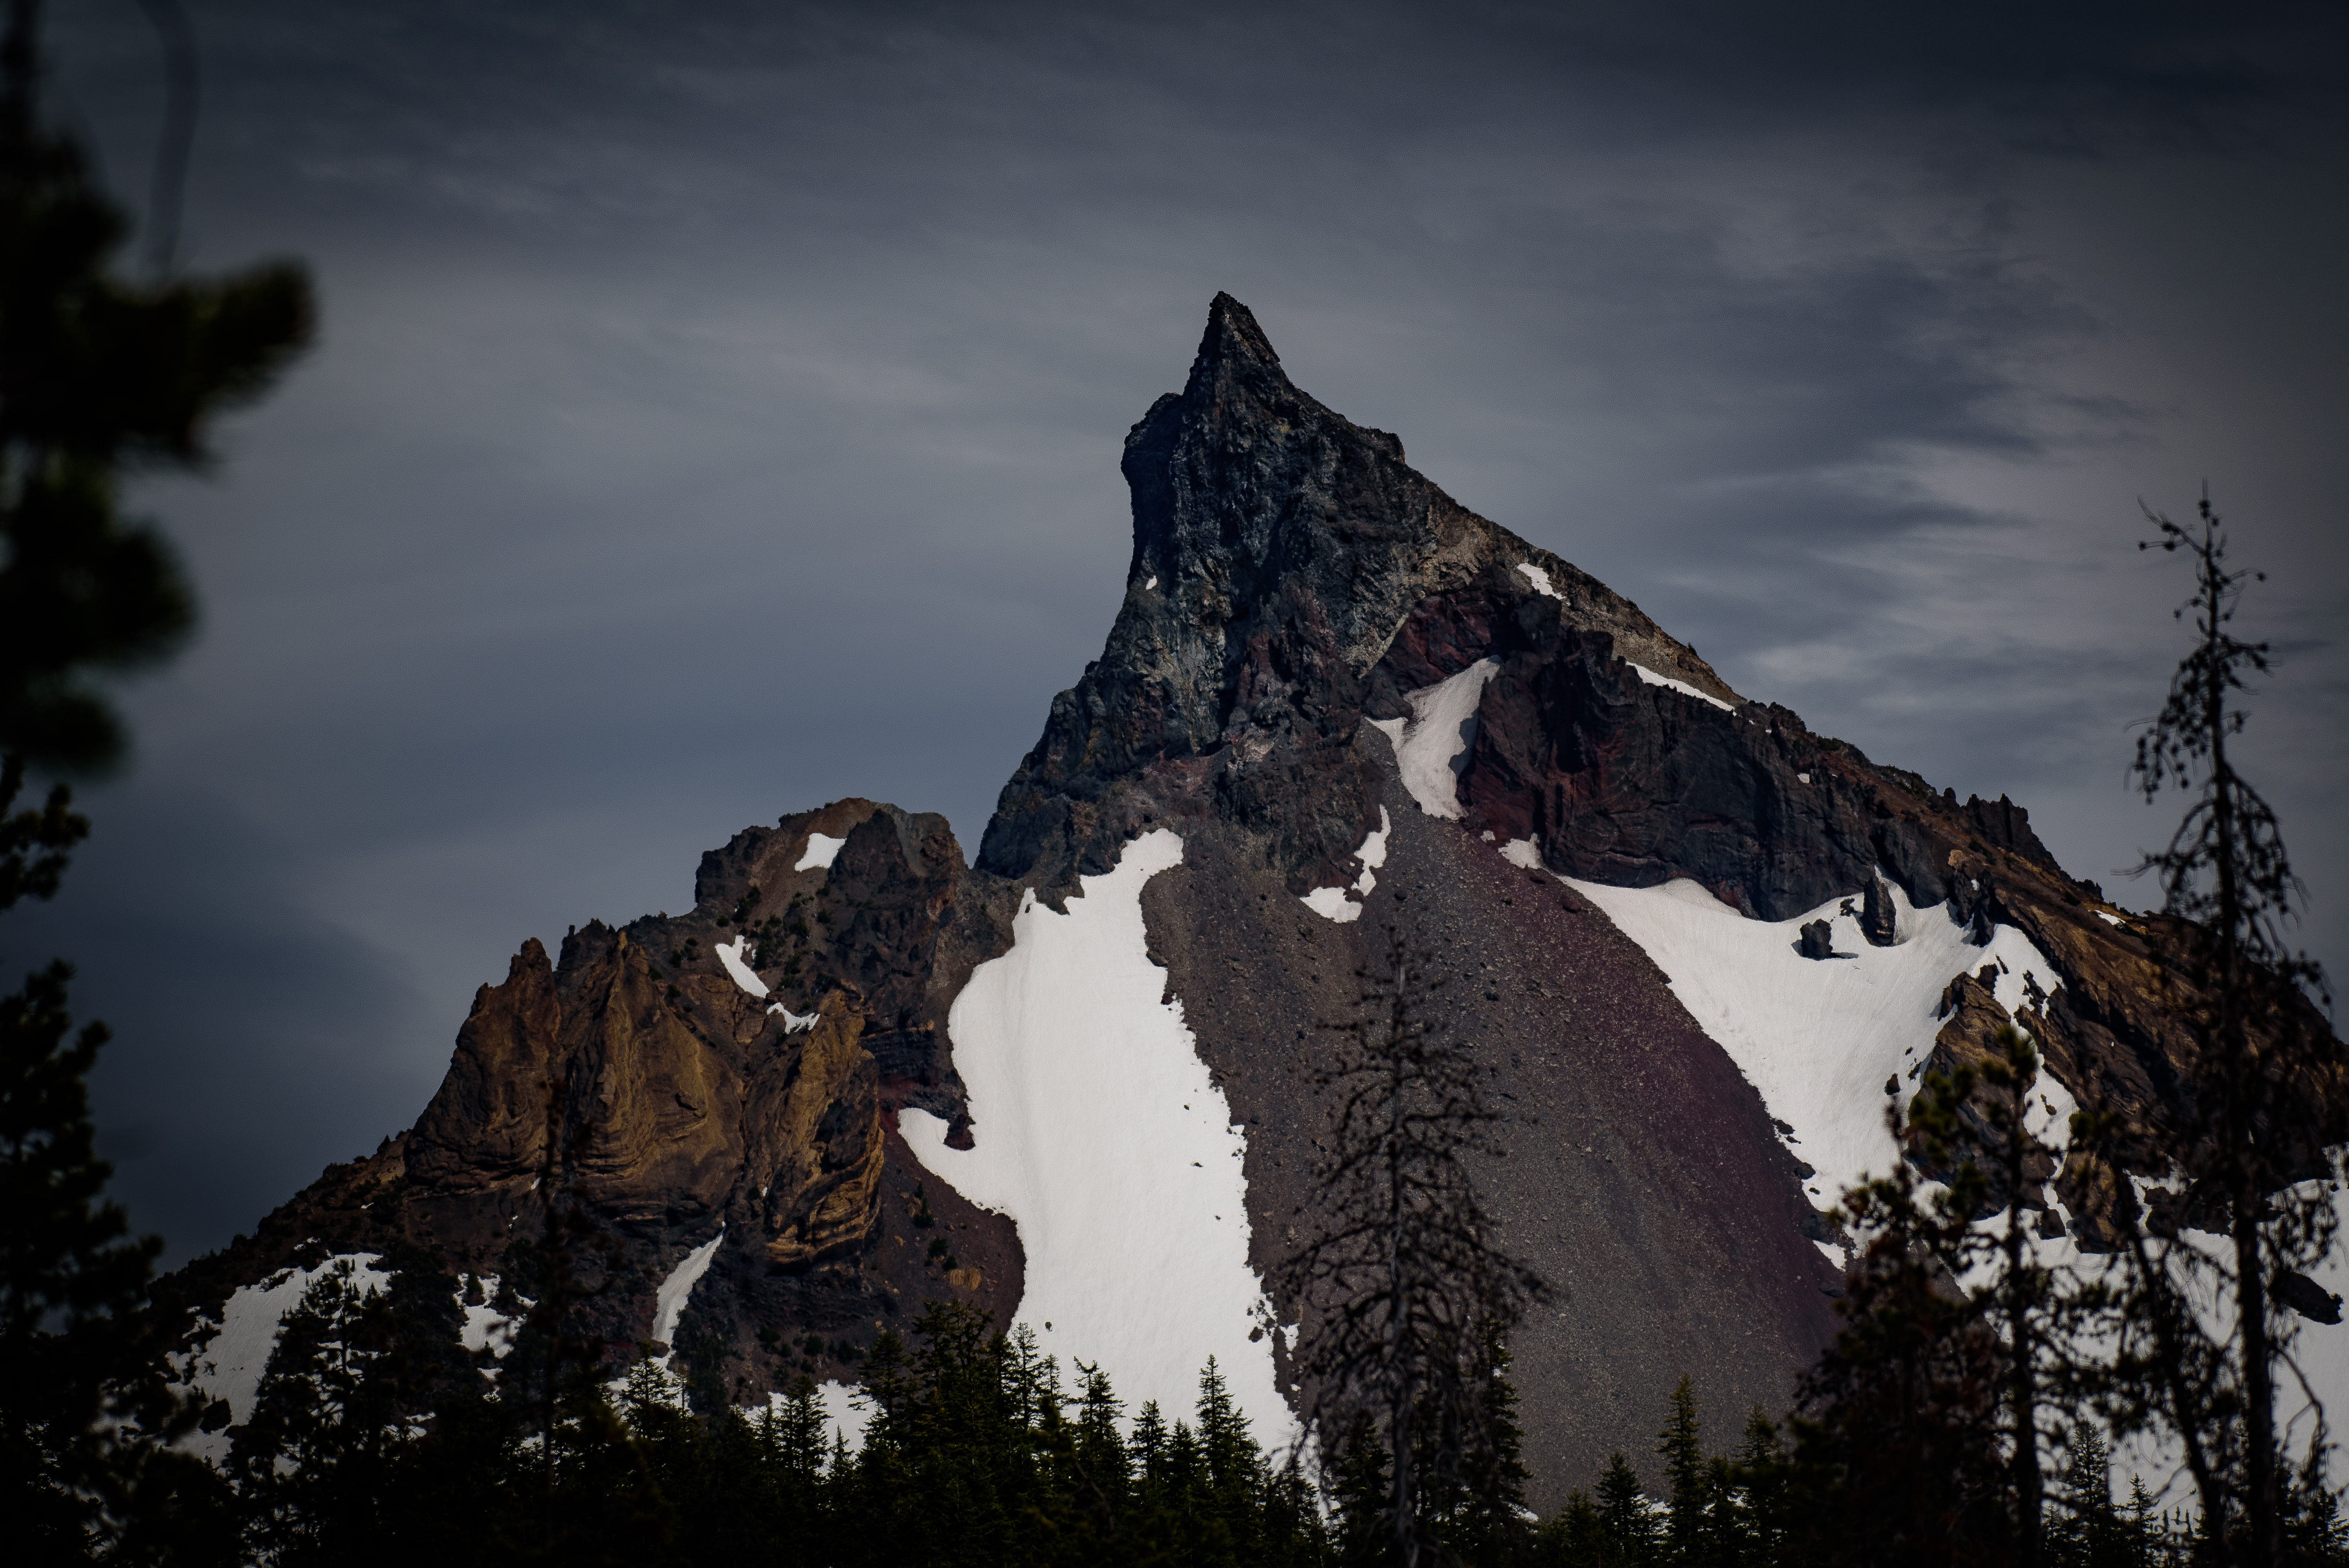 The rocky peak of a mountain covered partly in snow with trees in front